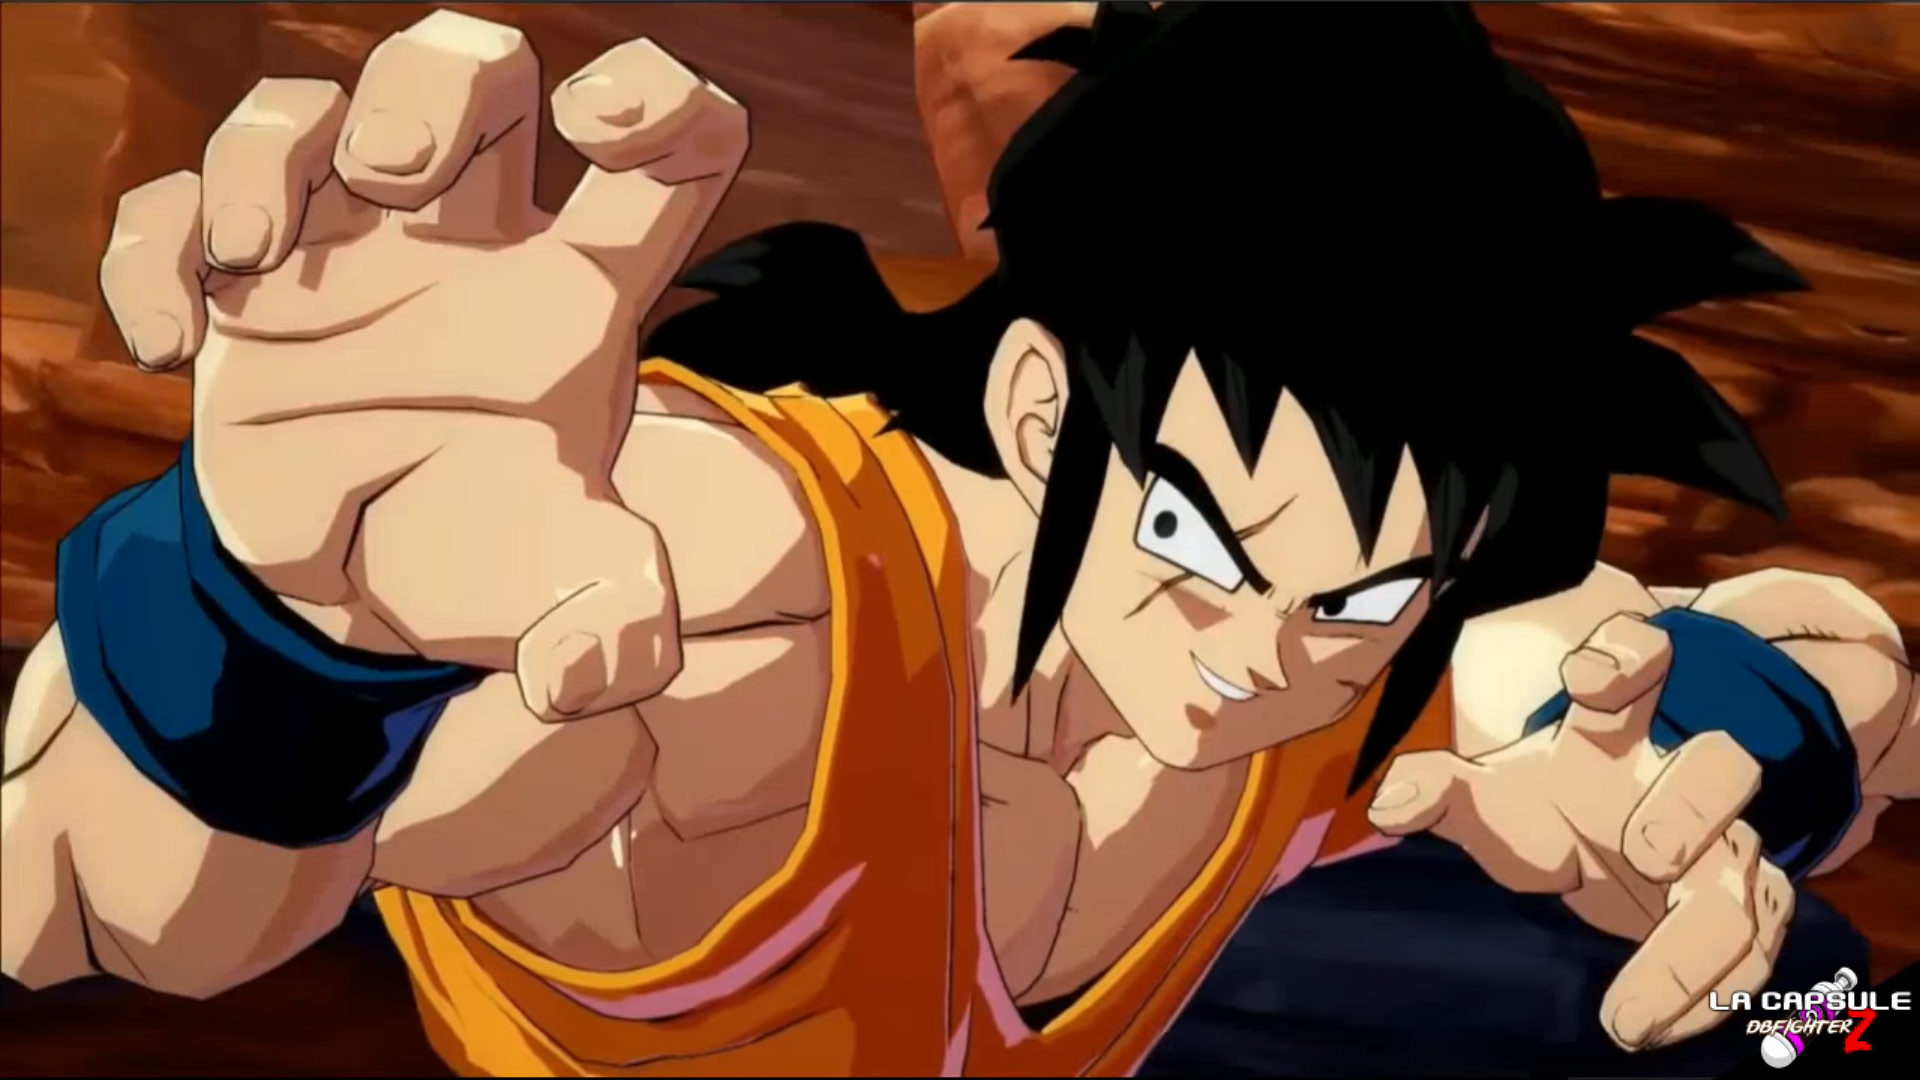 Yamcha and Tenshinhan Gameplay Trailer Gallery 1 out of 6 image gallery